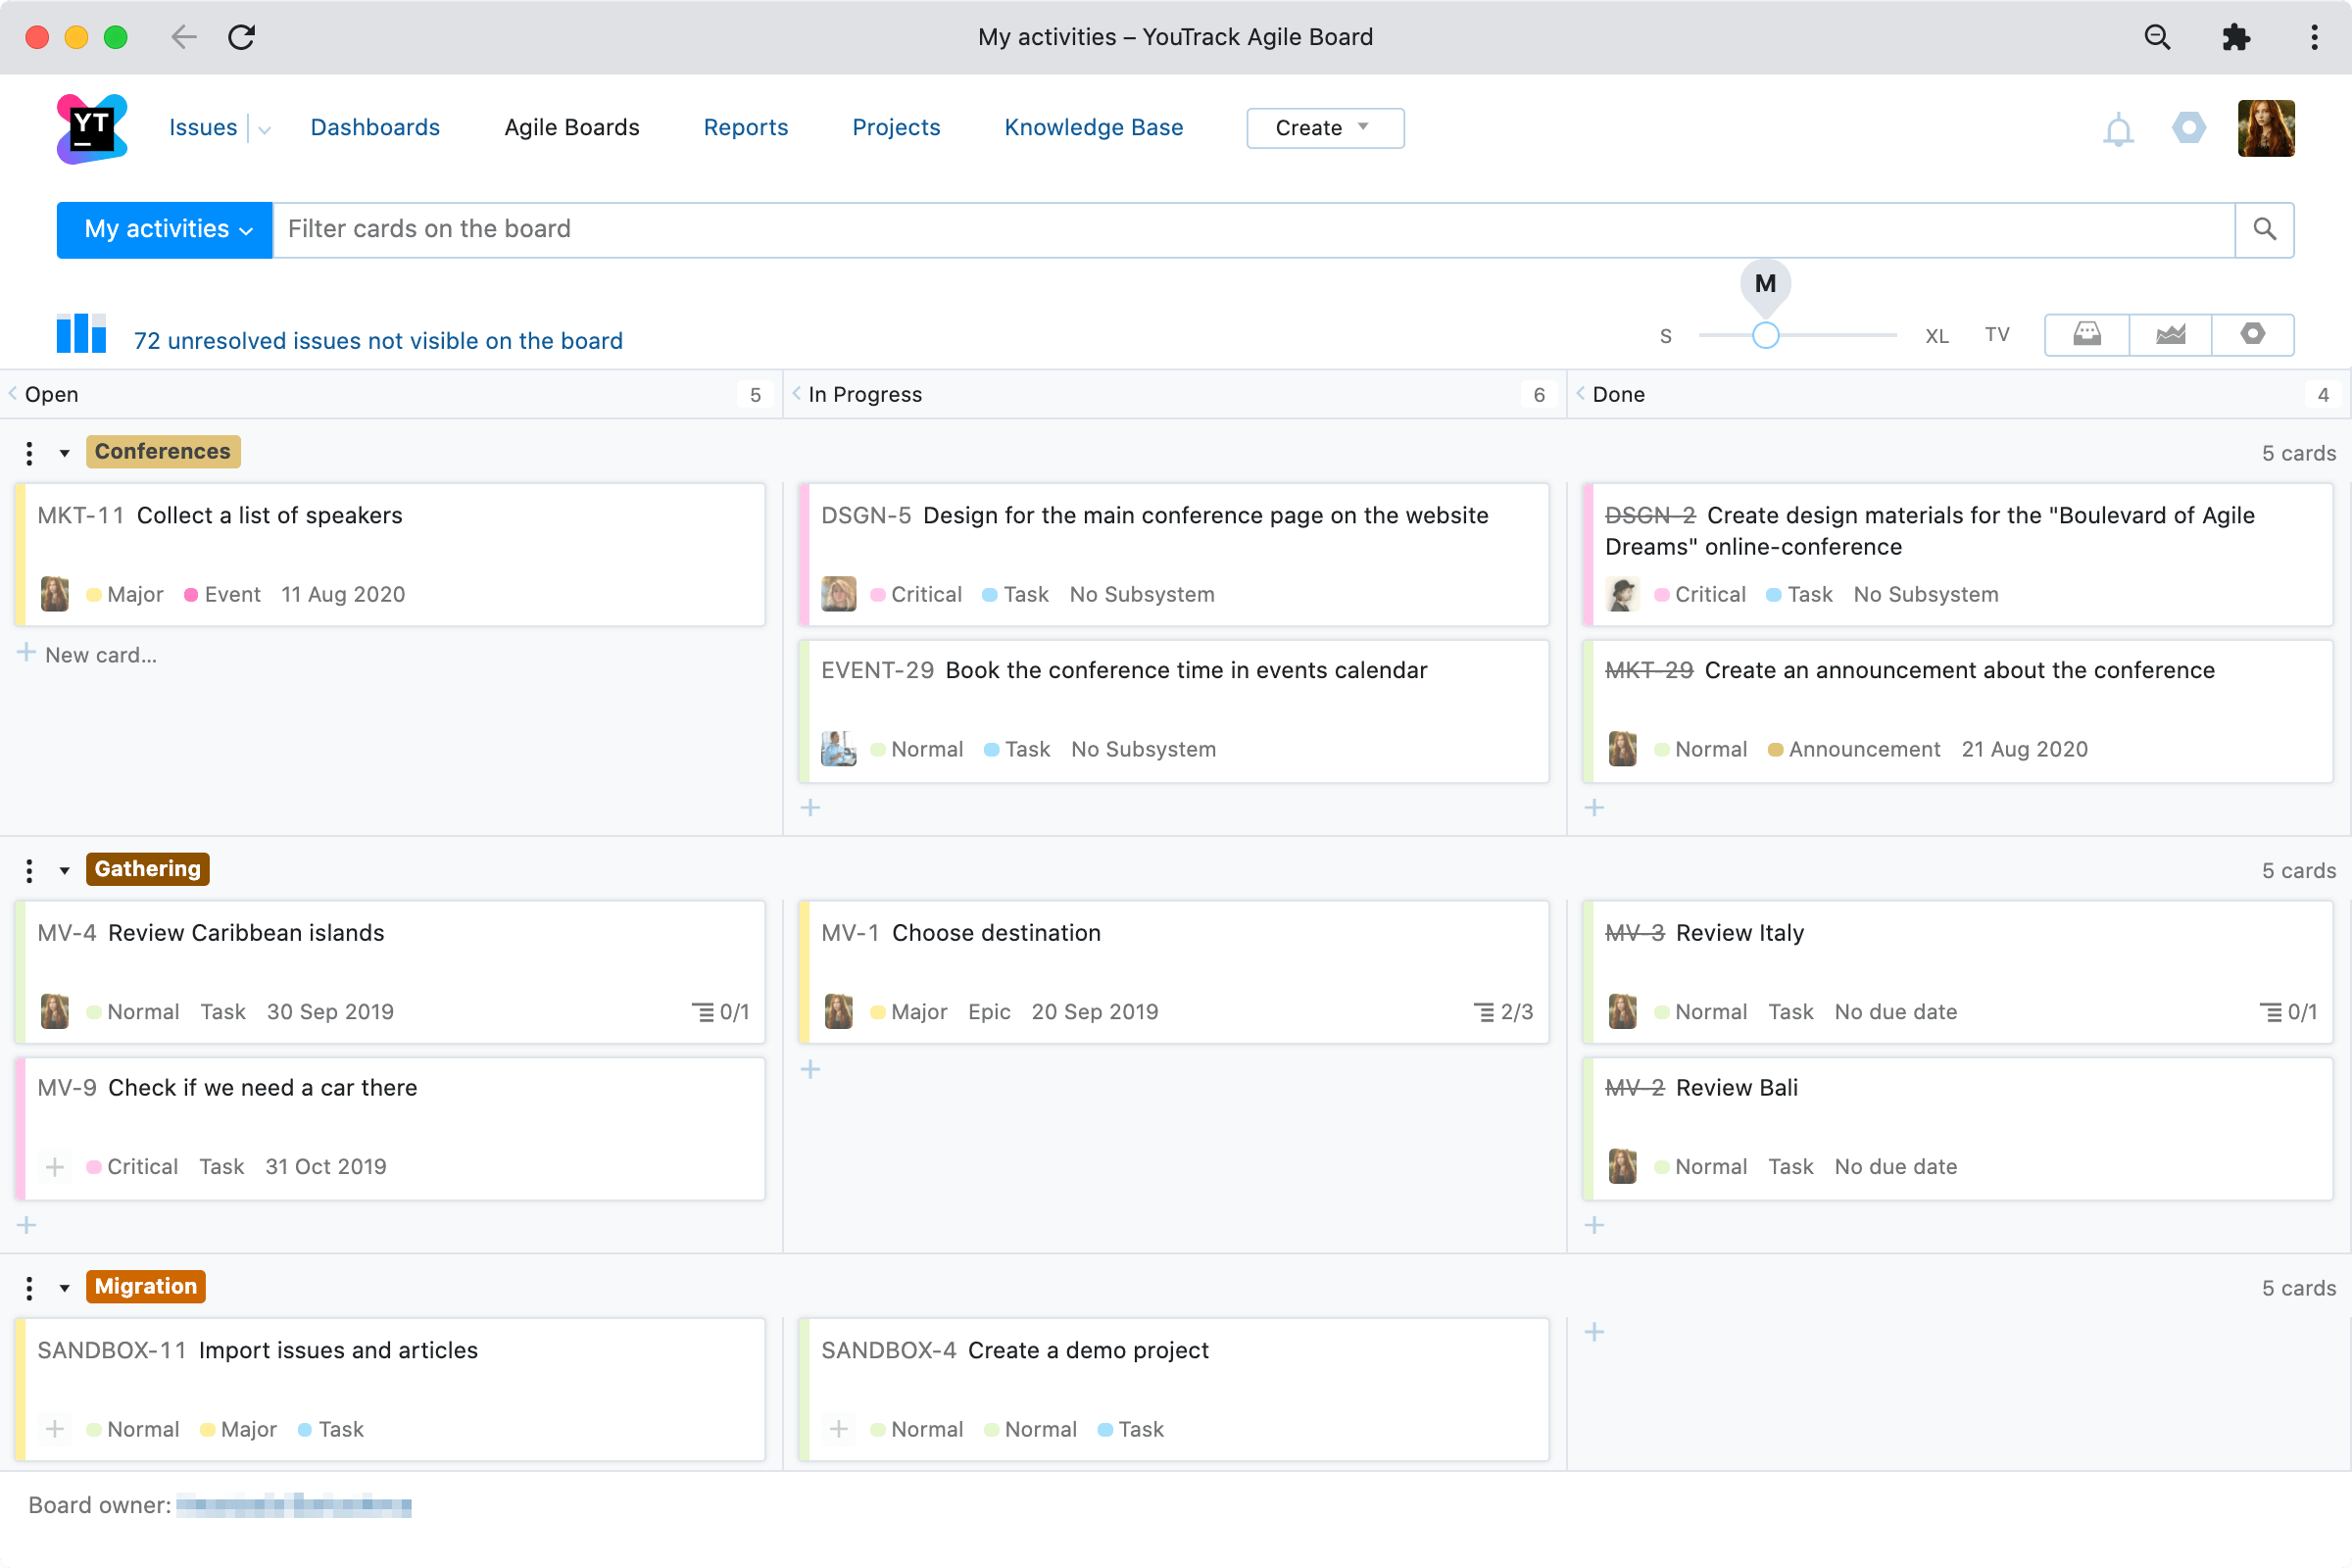 Enhancements for fans of Agile Boards